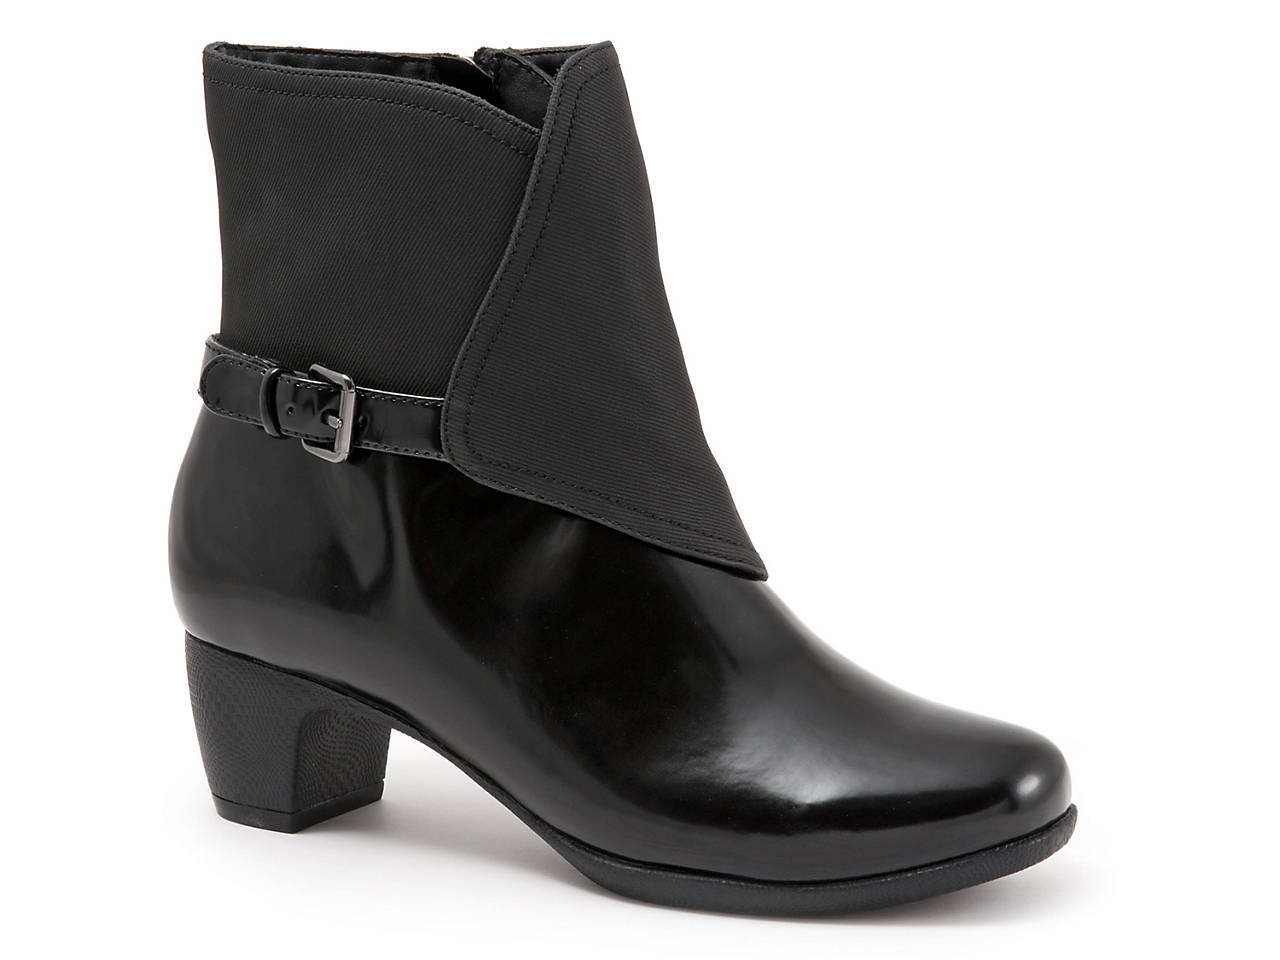 Shop for and buy dsw mens boots online at Macy's. Find dsw mens boots at Macy's.